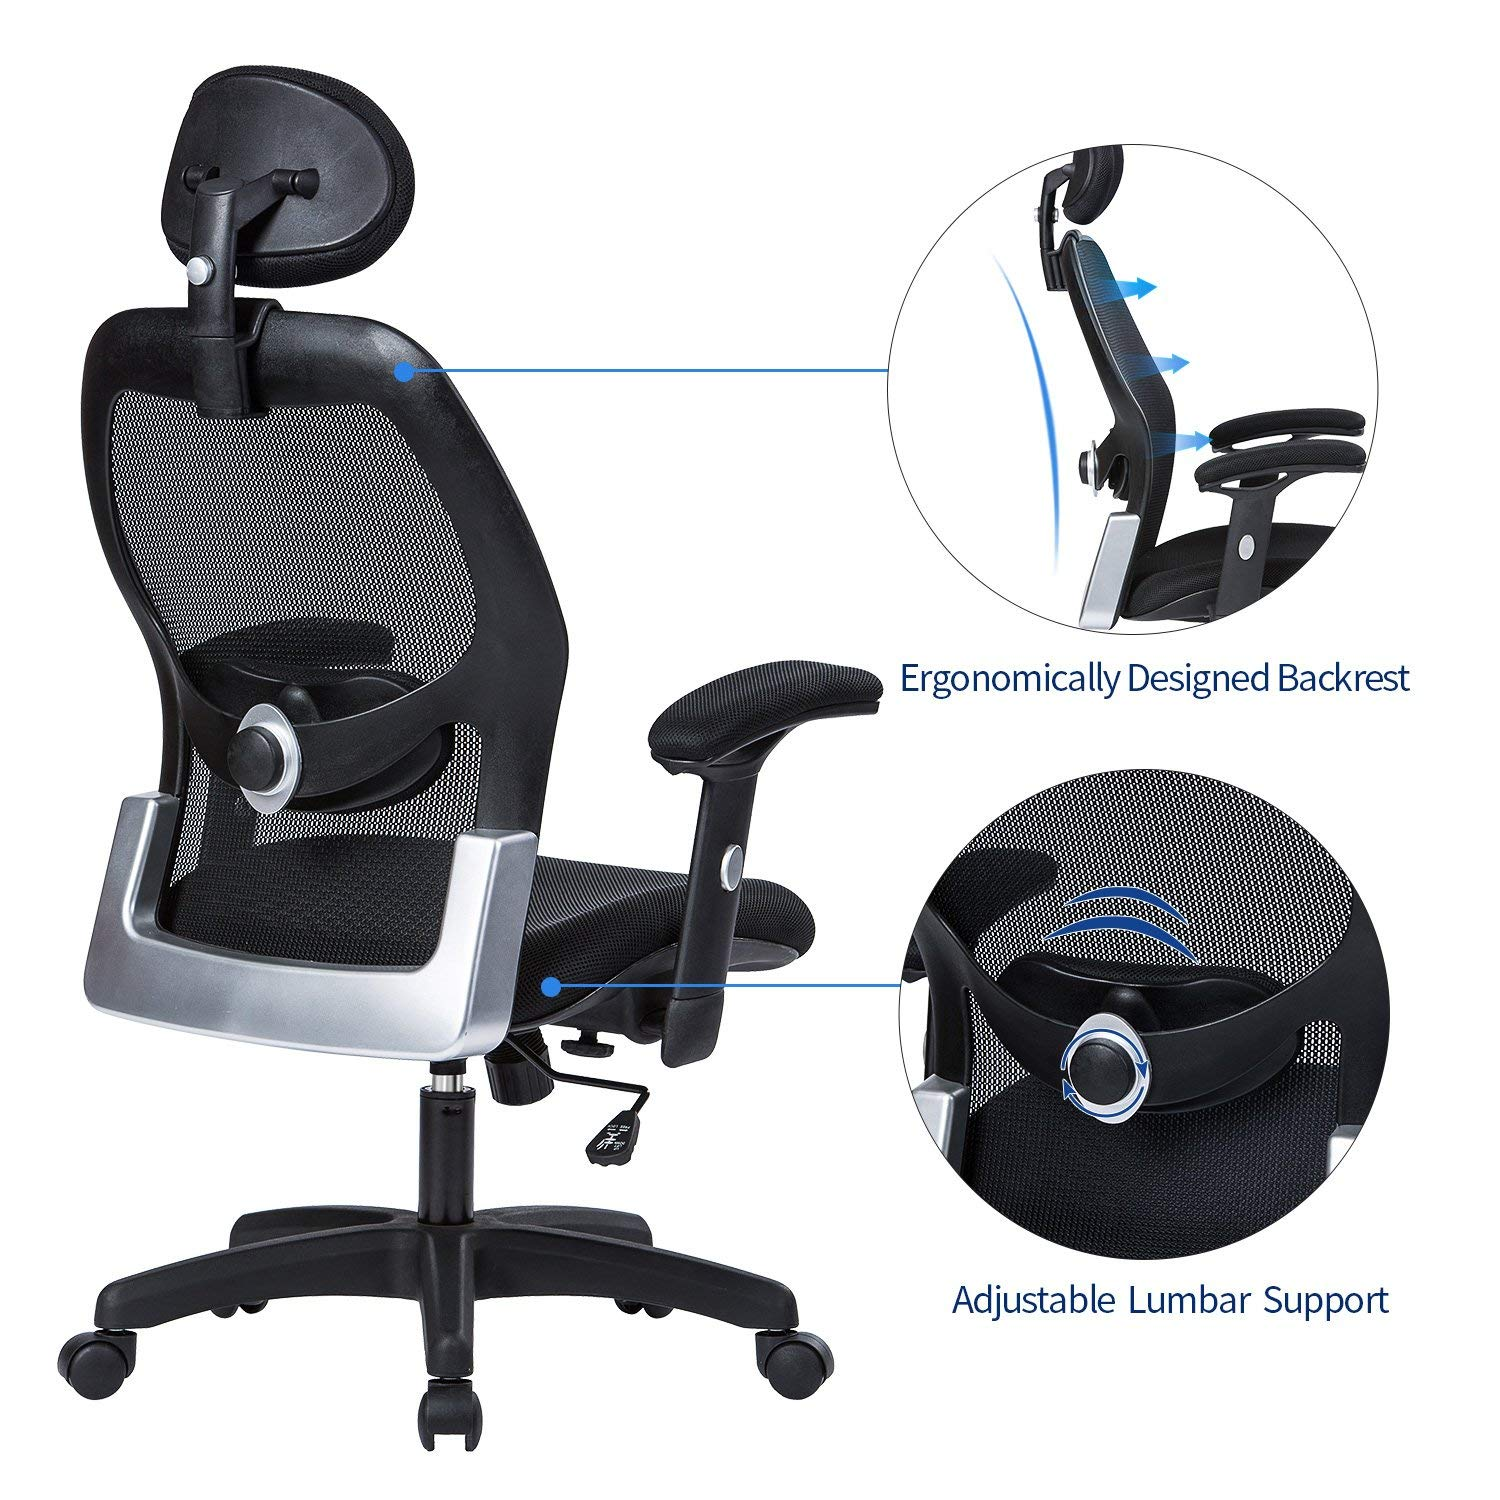 LIANFENG Ergonomic Office Chair, High Back Executive Swivel Computer Desk Chair with Adjustable Armrests and Headrest, Back Lumbar Support, Black by LIANFENG (Image #3)